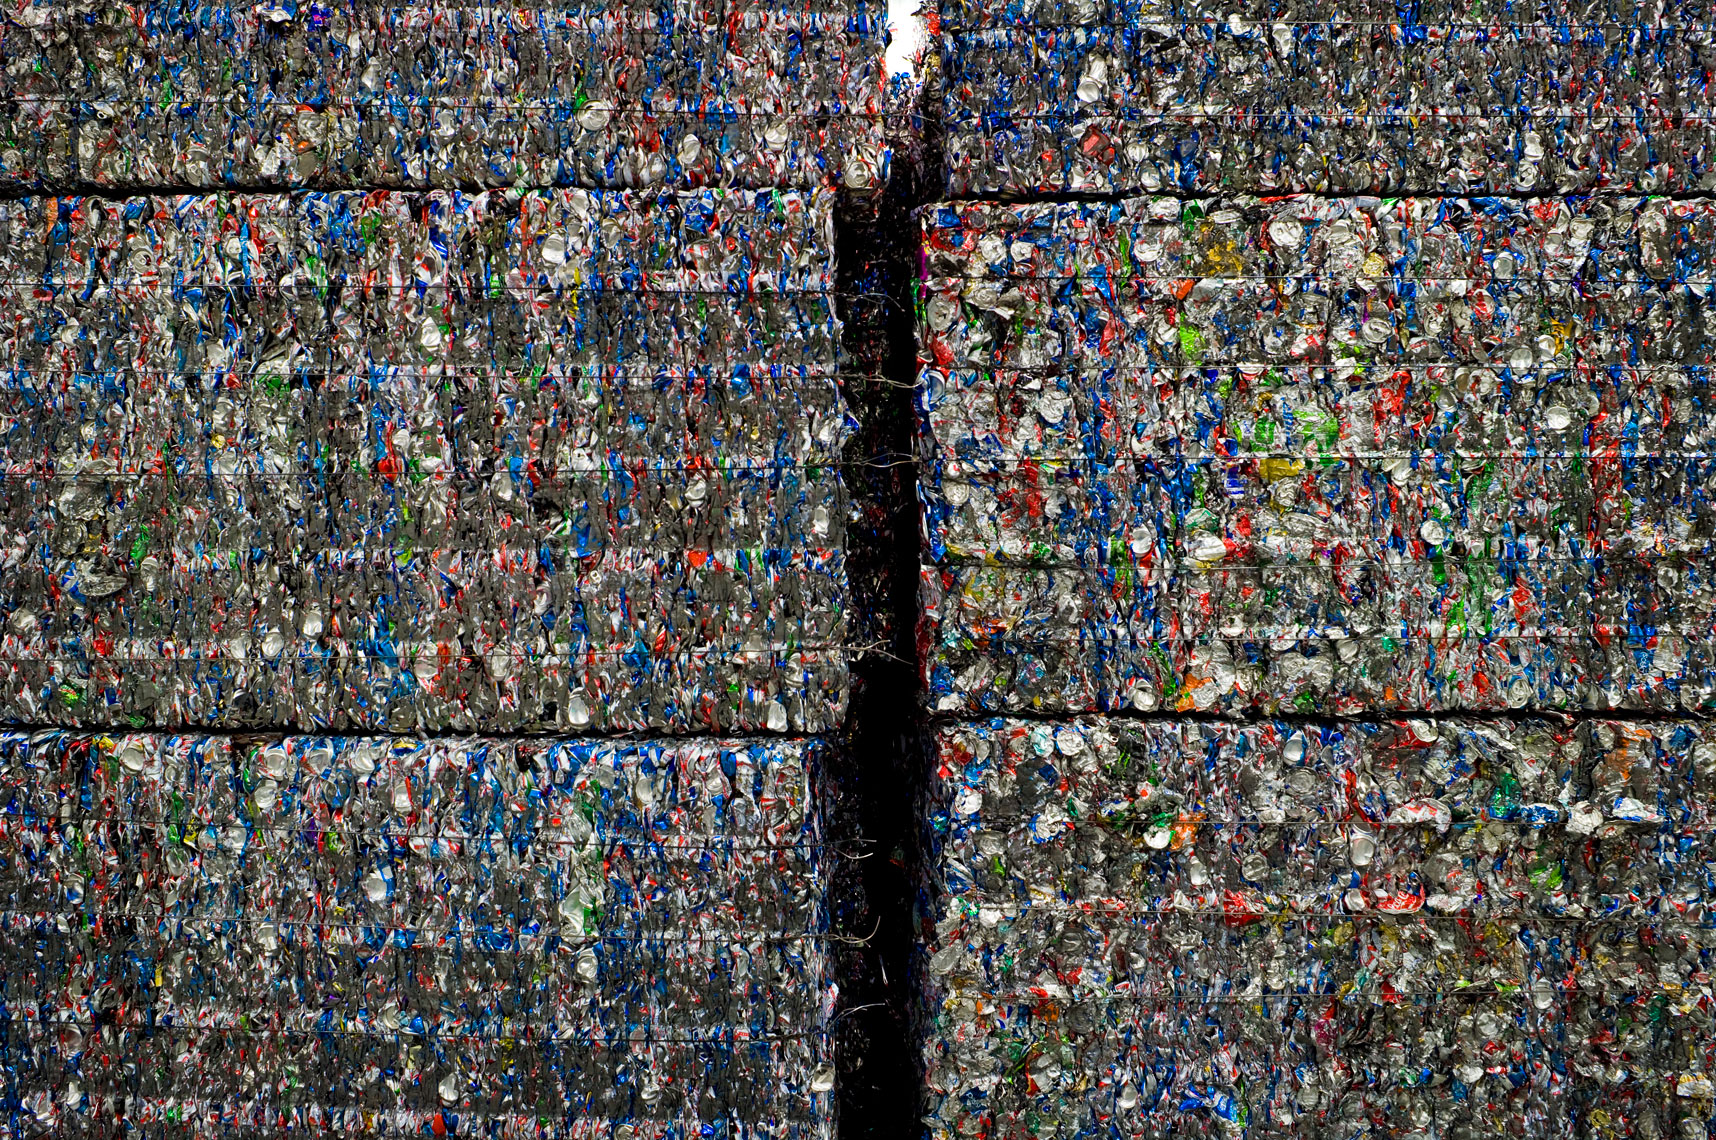 aluminum cans baled for recycling